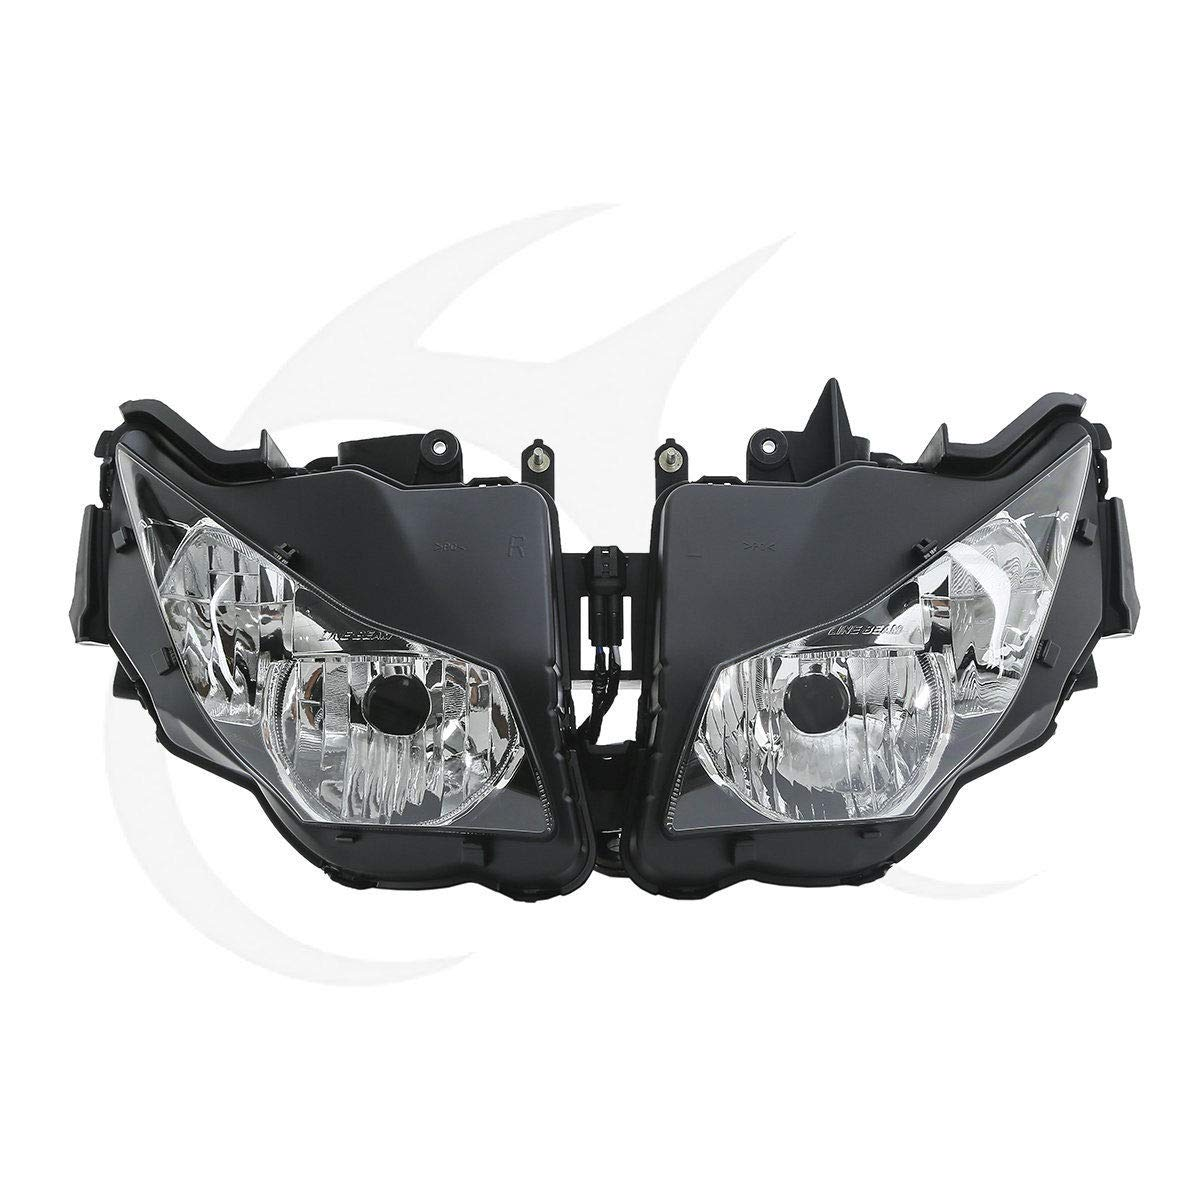 XFMT Front Headlight Light Clear Lens Assembly Compatible with Honda CBR1000RR 2012-2015 2013 by XFMT